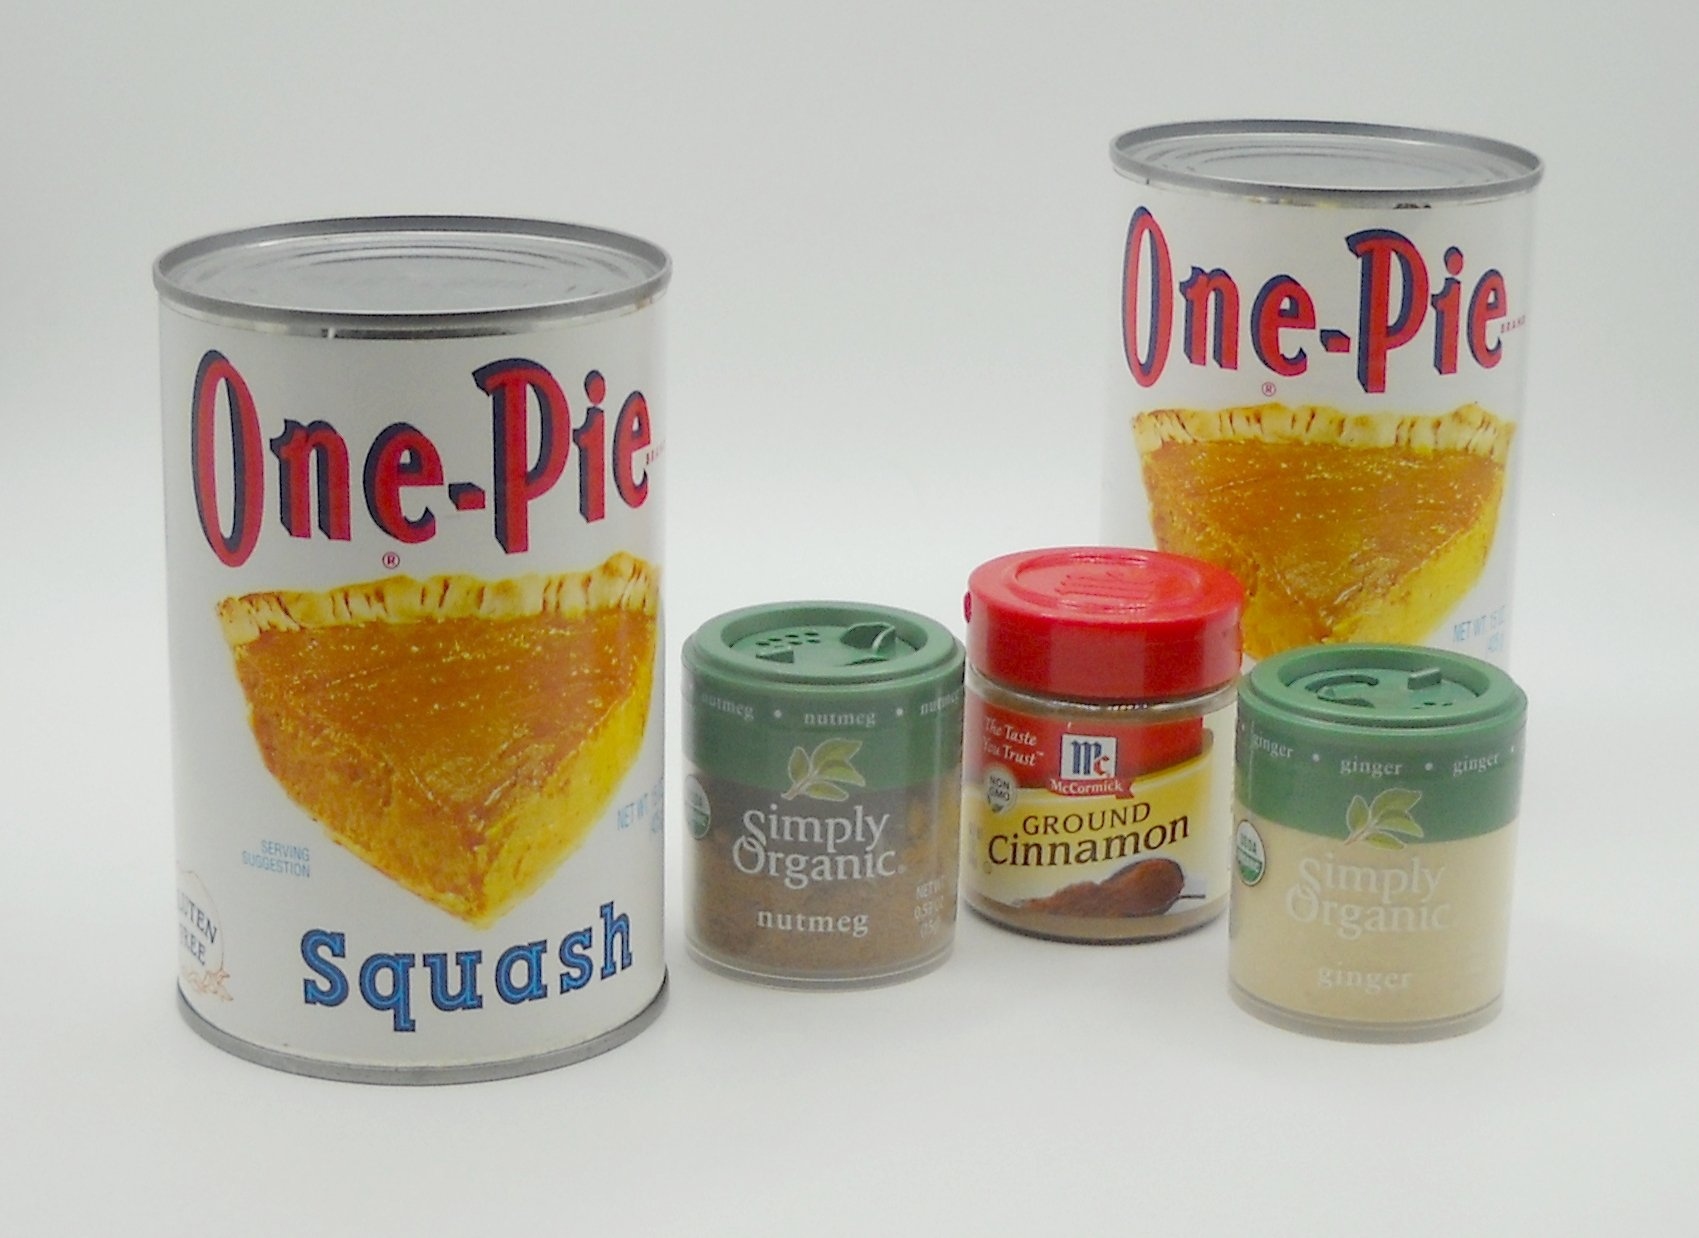 Traditional New England Squash Pie Baking Bundle for 2 pies featuring One-Pie Squash, Simply Organic Nutmeg and Ginger, and McCormick Cinnamon